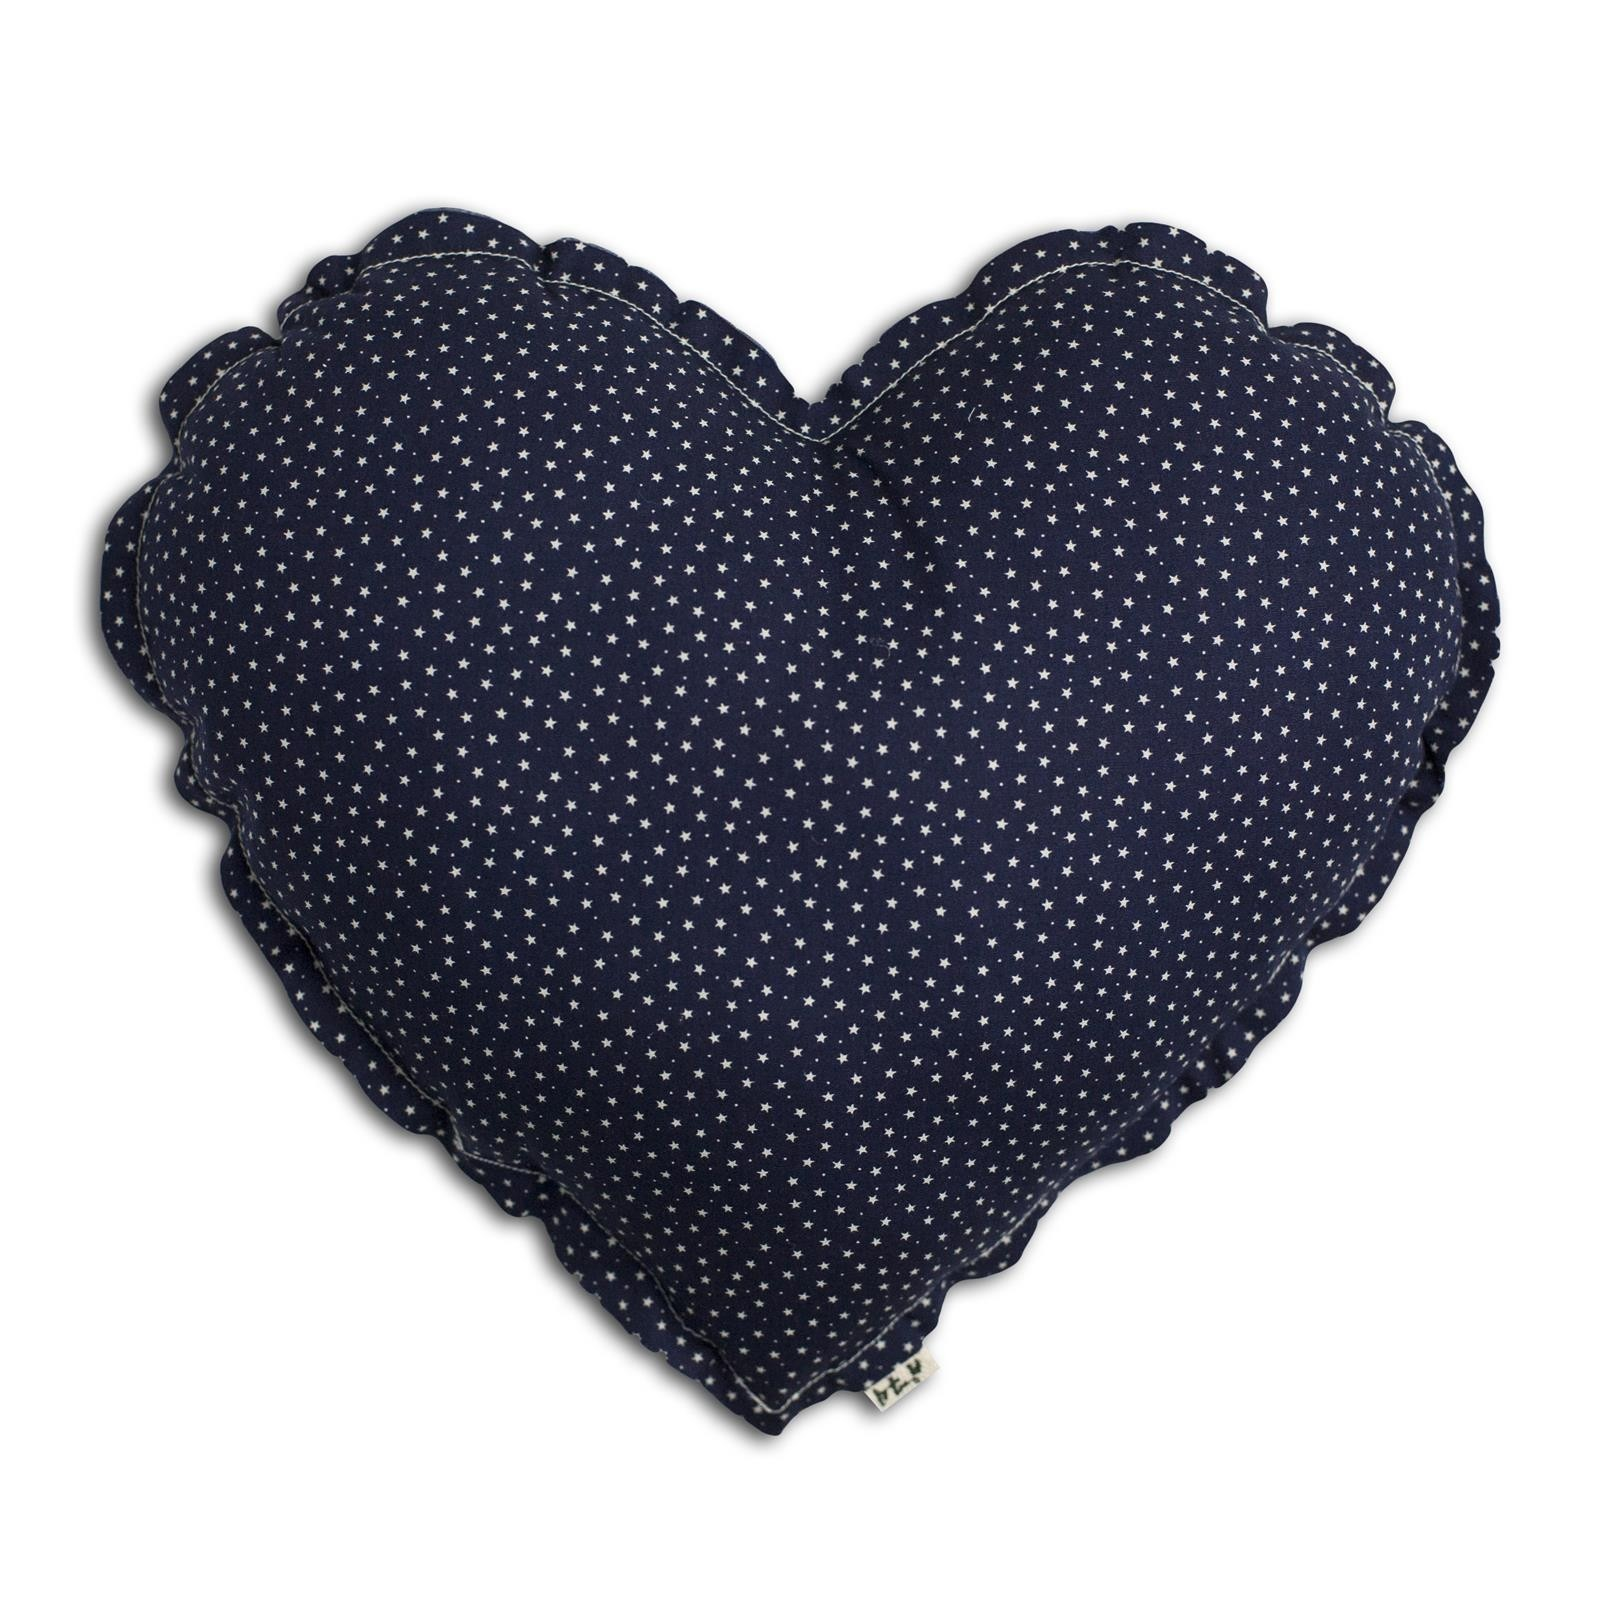 Heart Cushion night blue with white stars